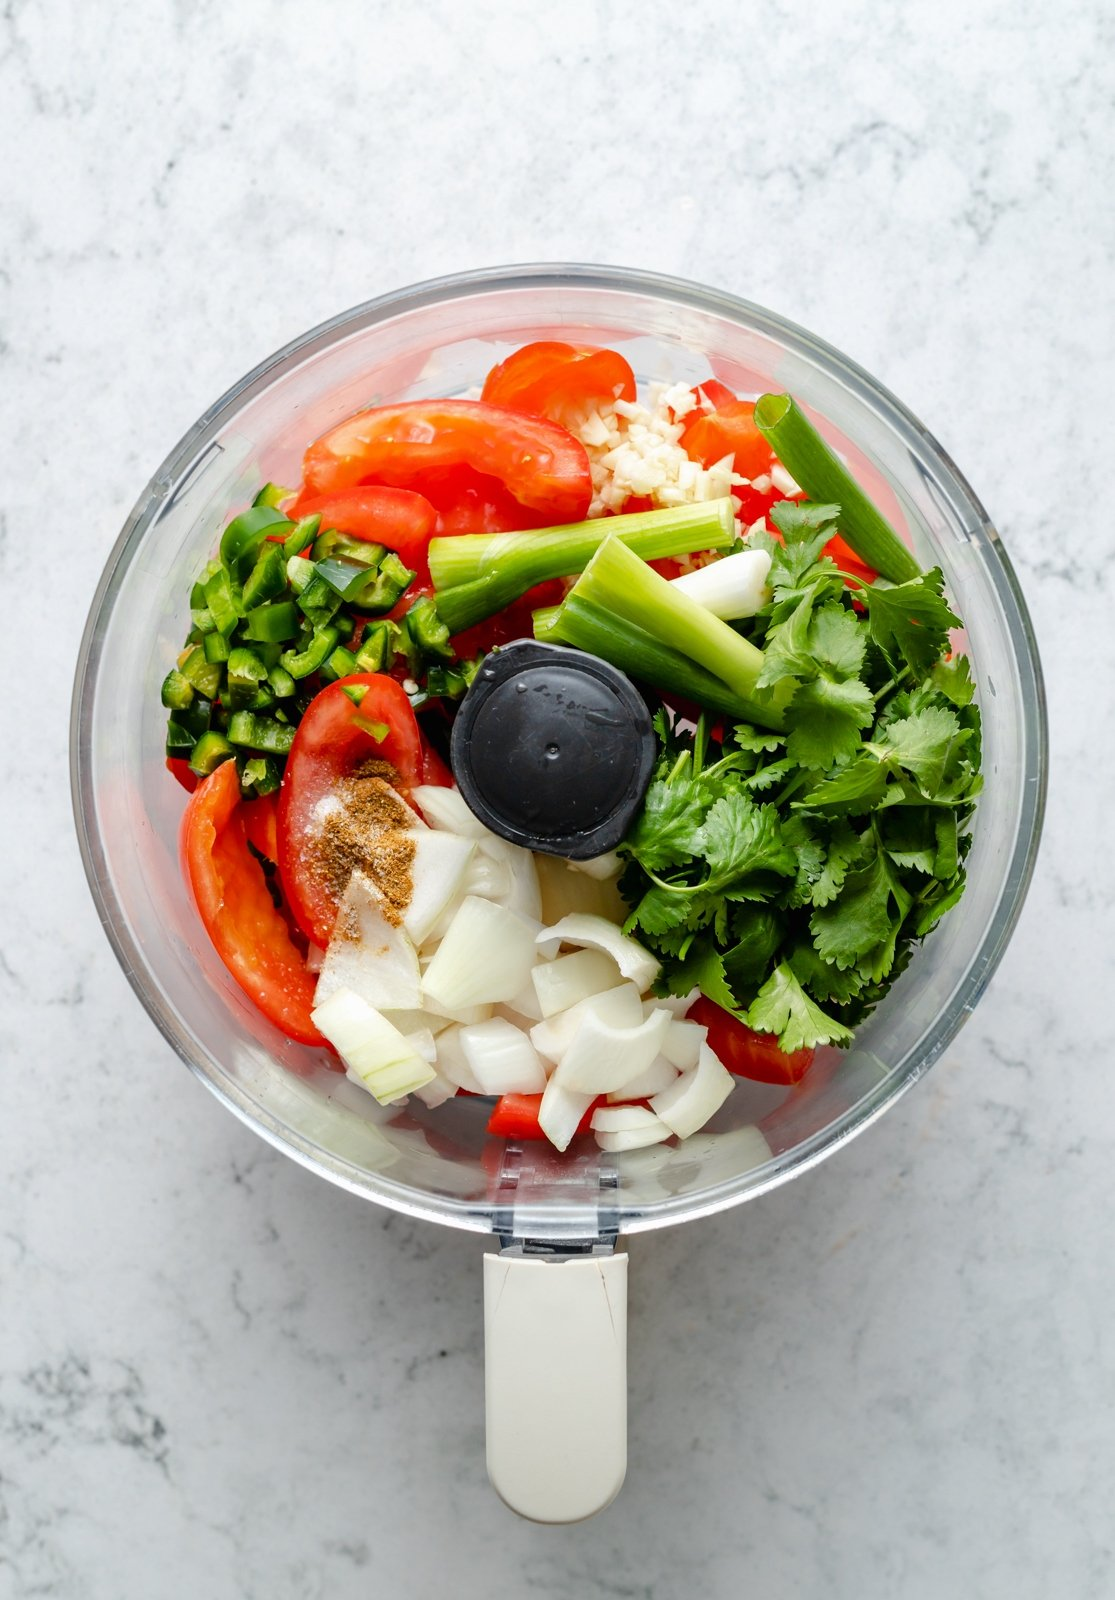 ingredients to make easy homemade salsa in a food processor